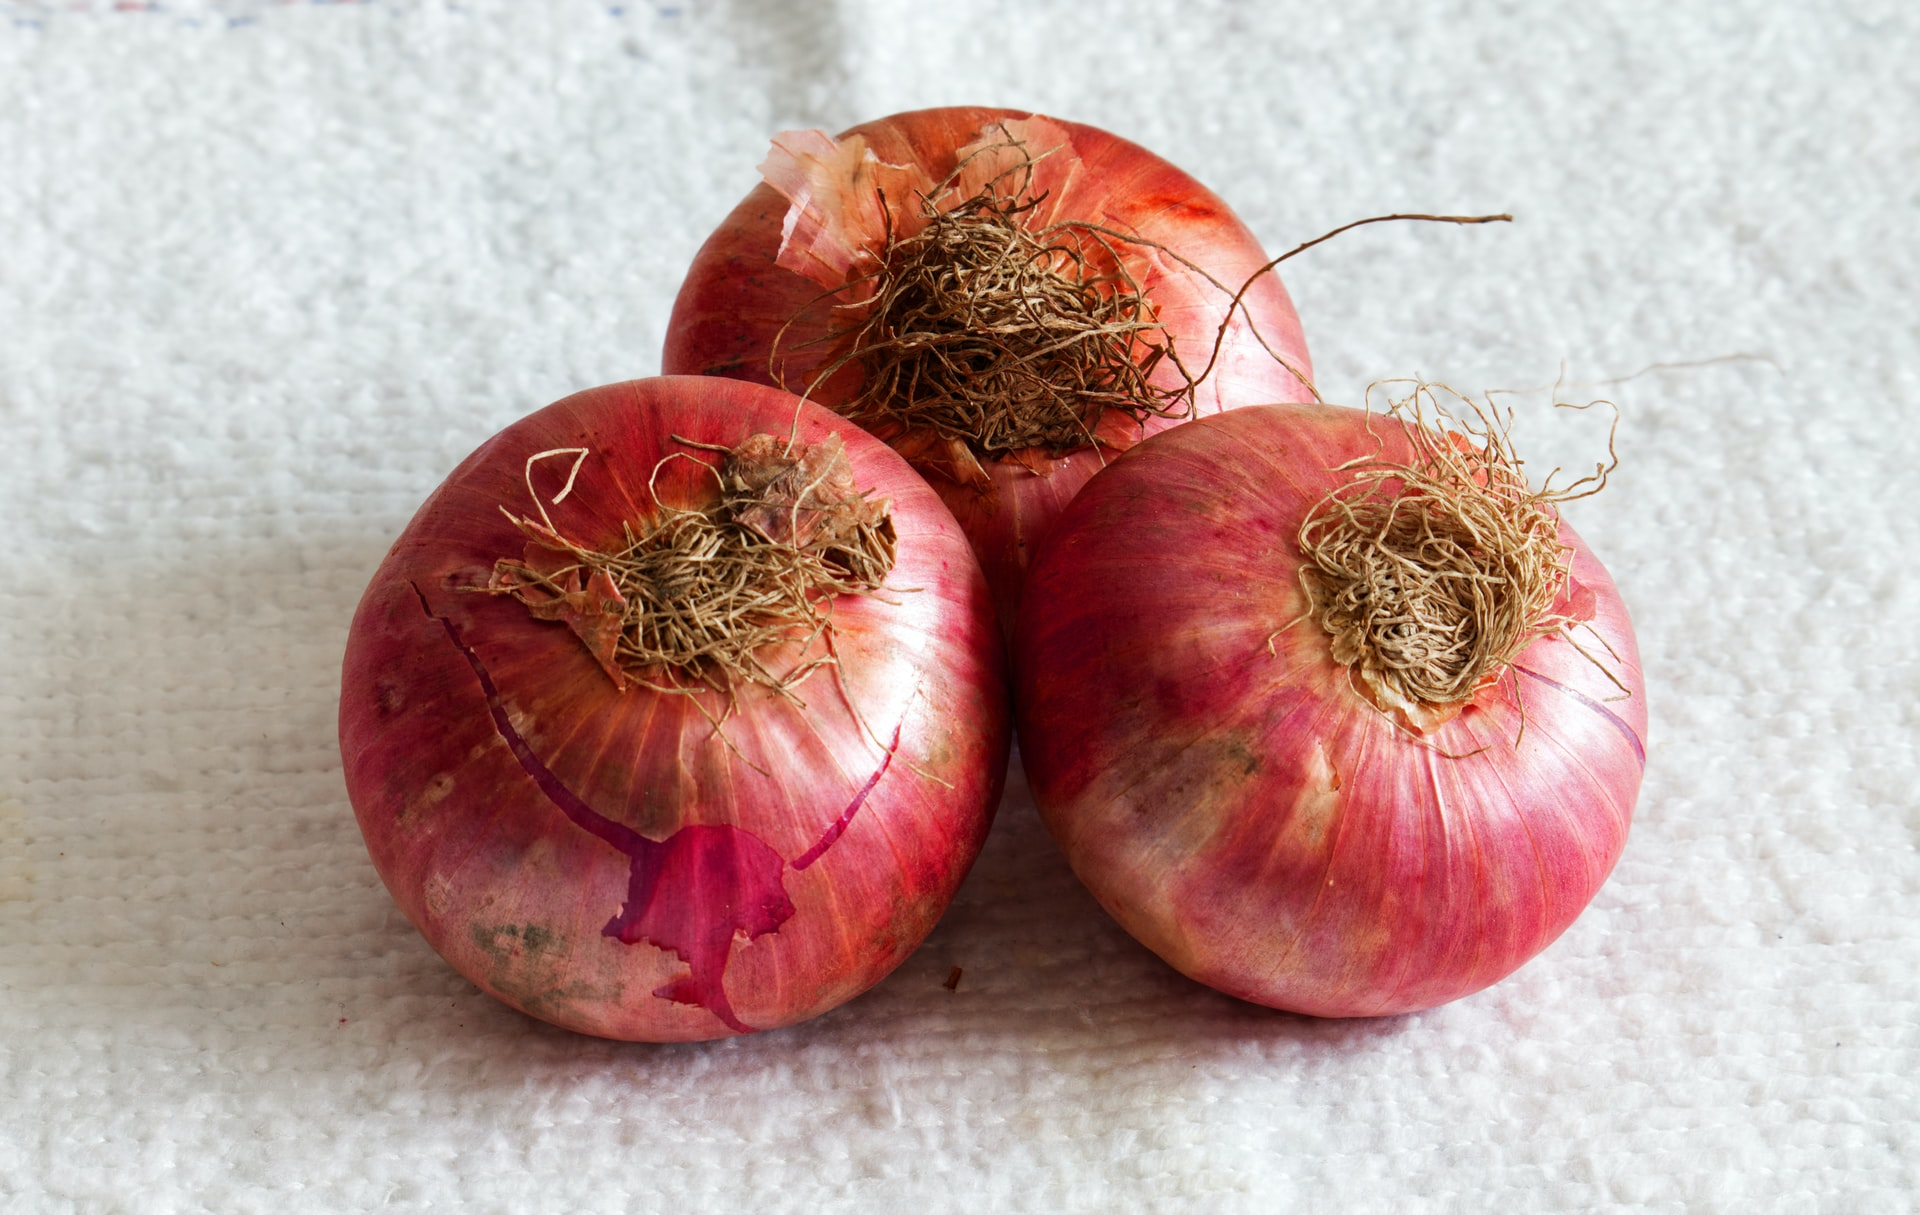 Onions on Nutmeg Disrupted